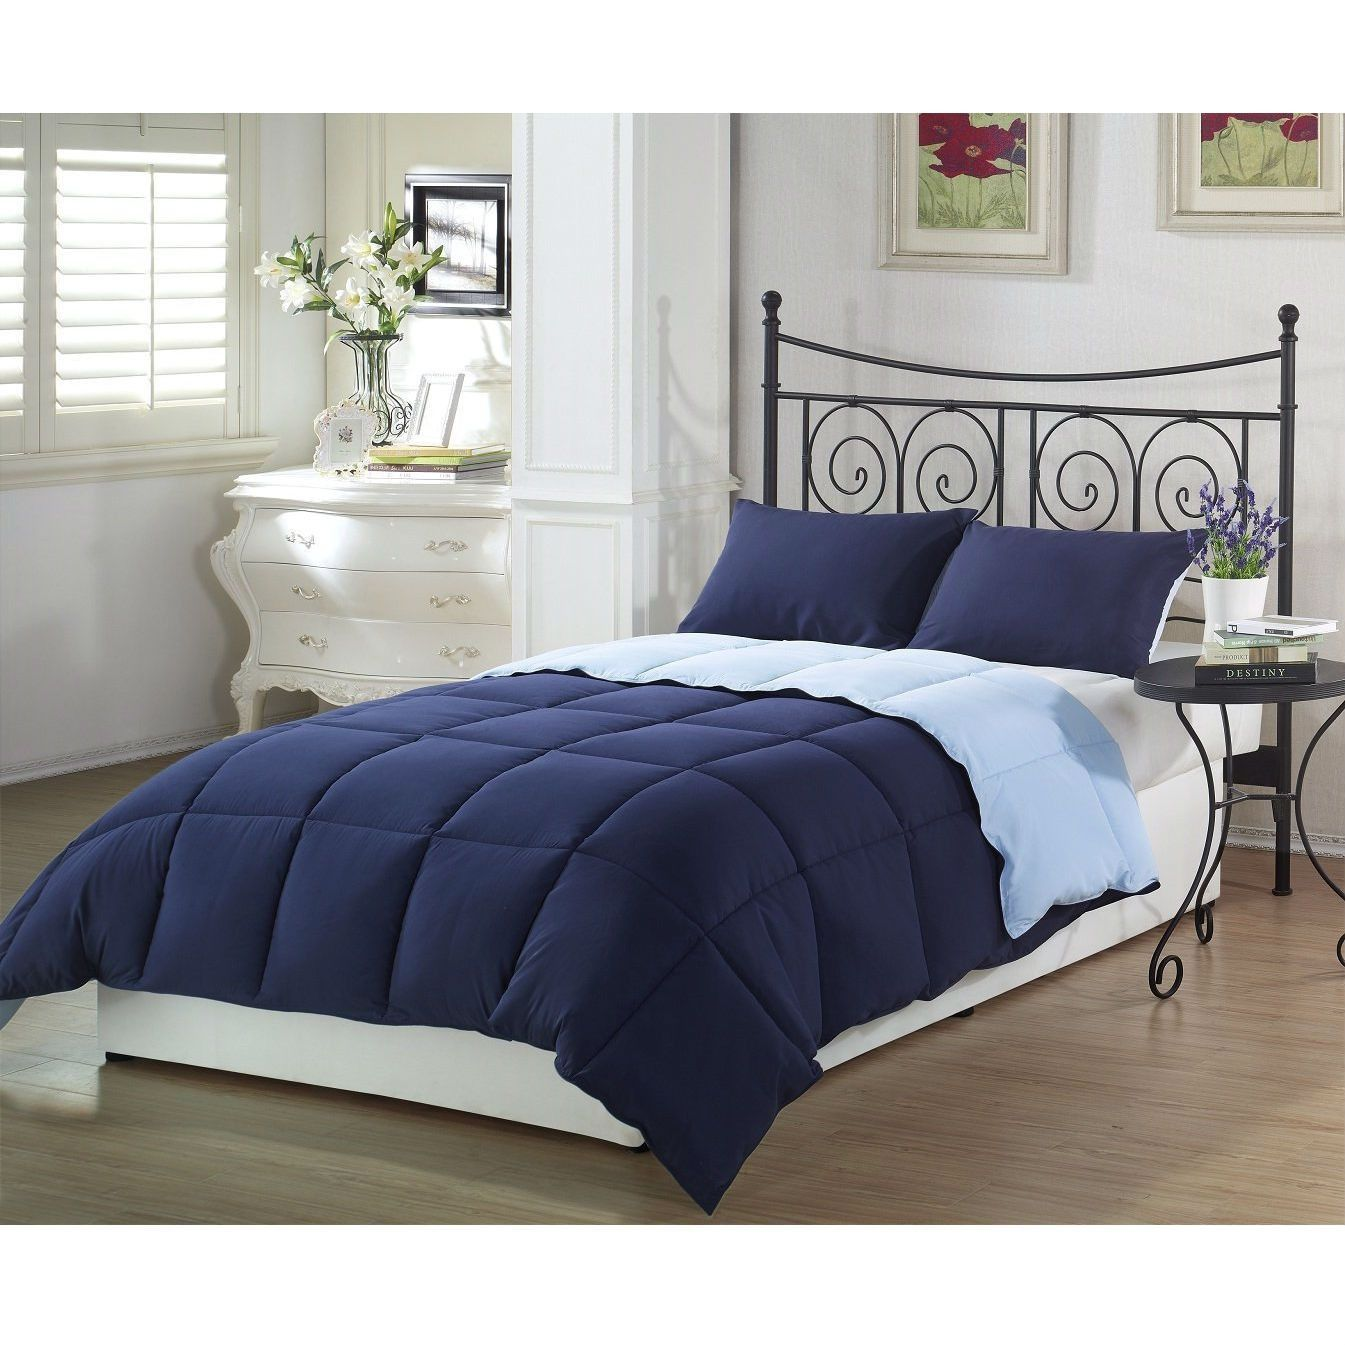 timberwolf comforter tips applied set piece unusual cobalt design blue navy and to crayola your residence with comforters reversible